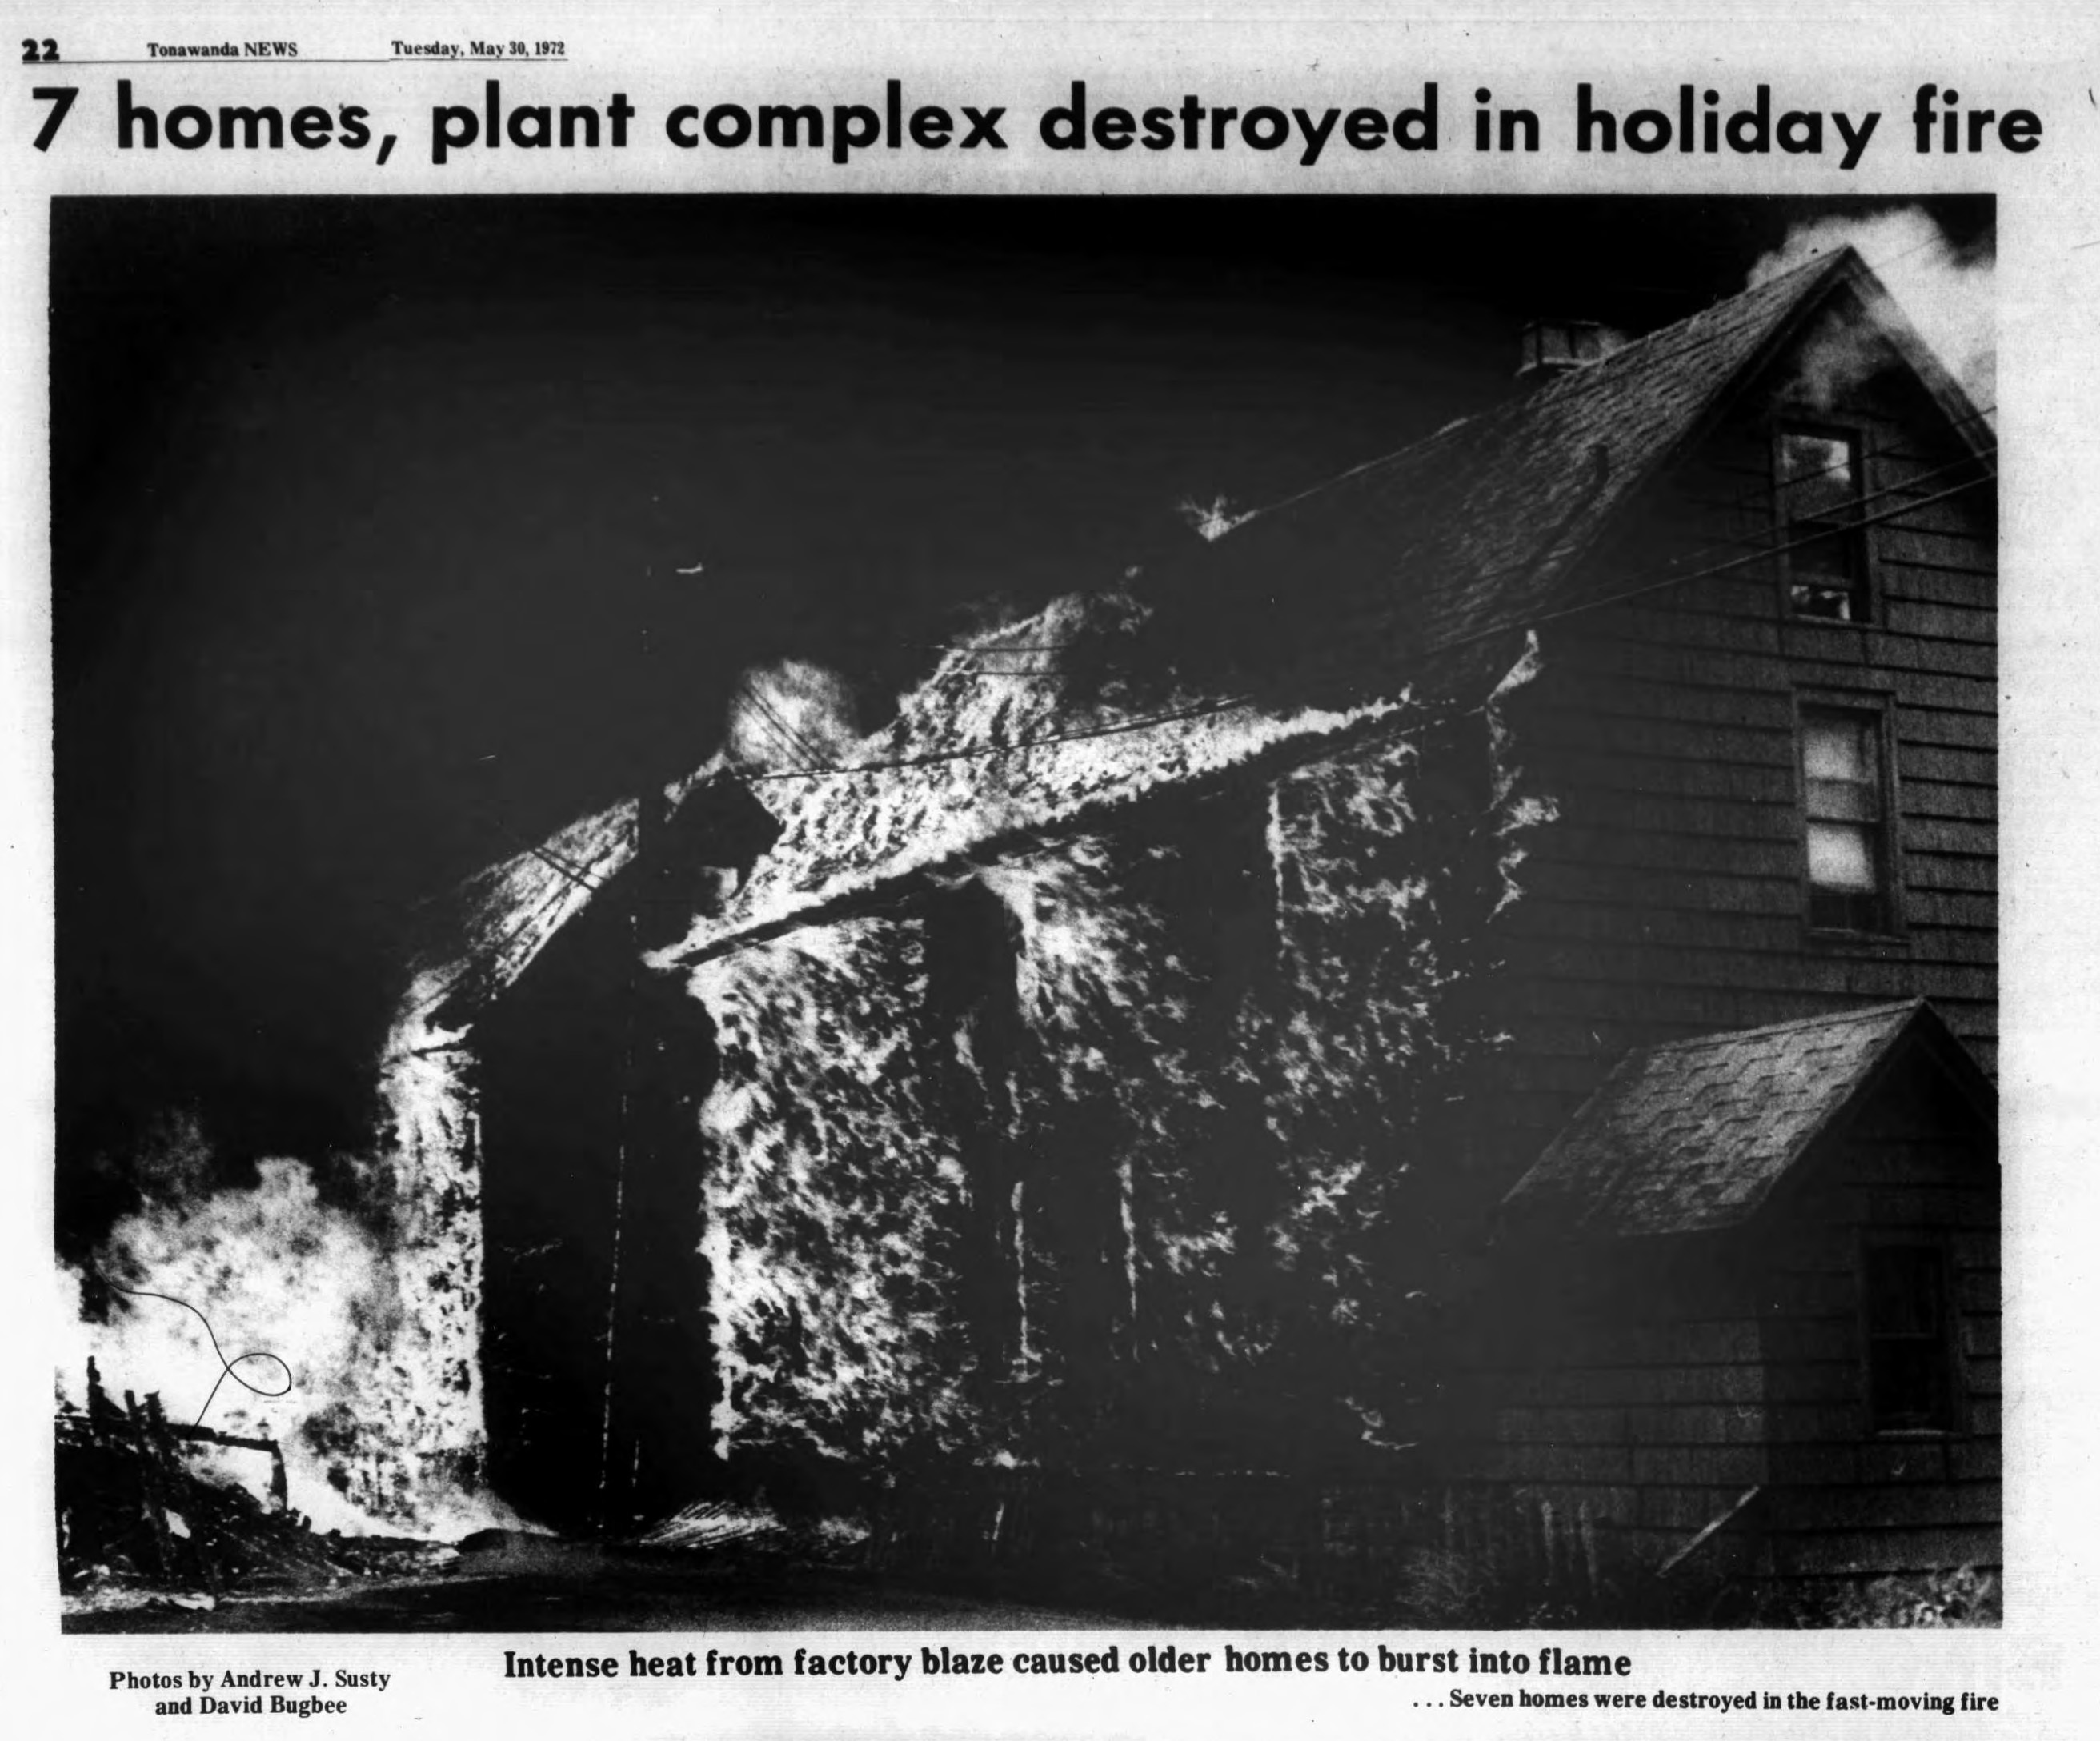 7 homes, plant complex destroyed, photo (1972-05-30).jpg